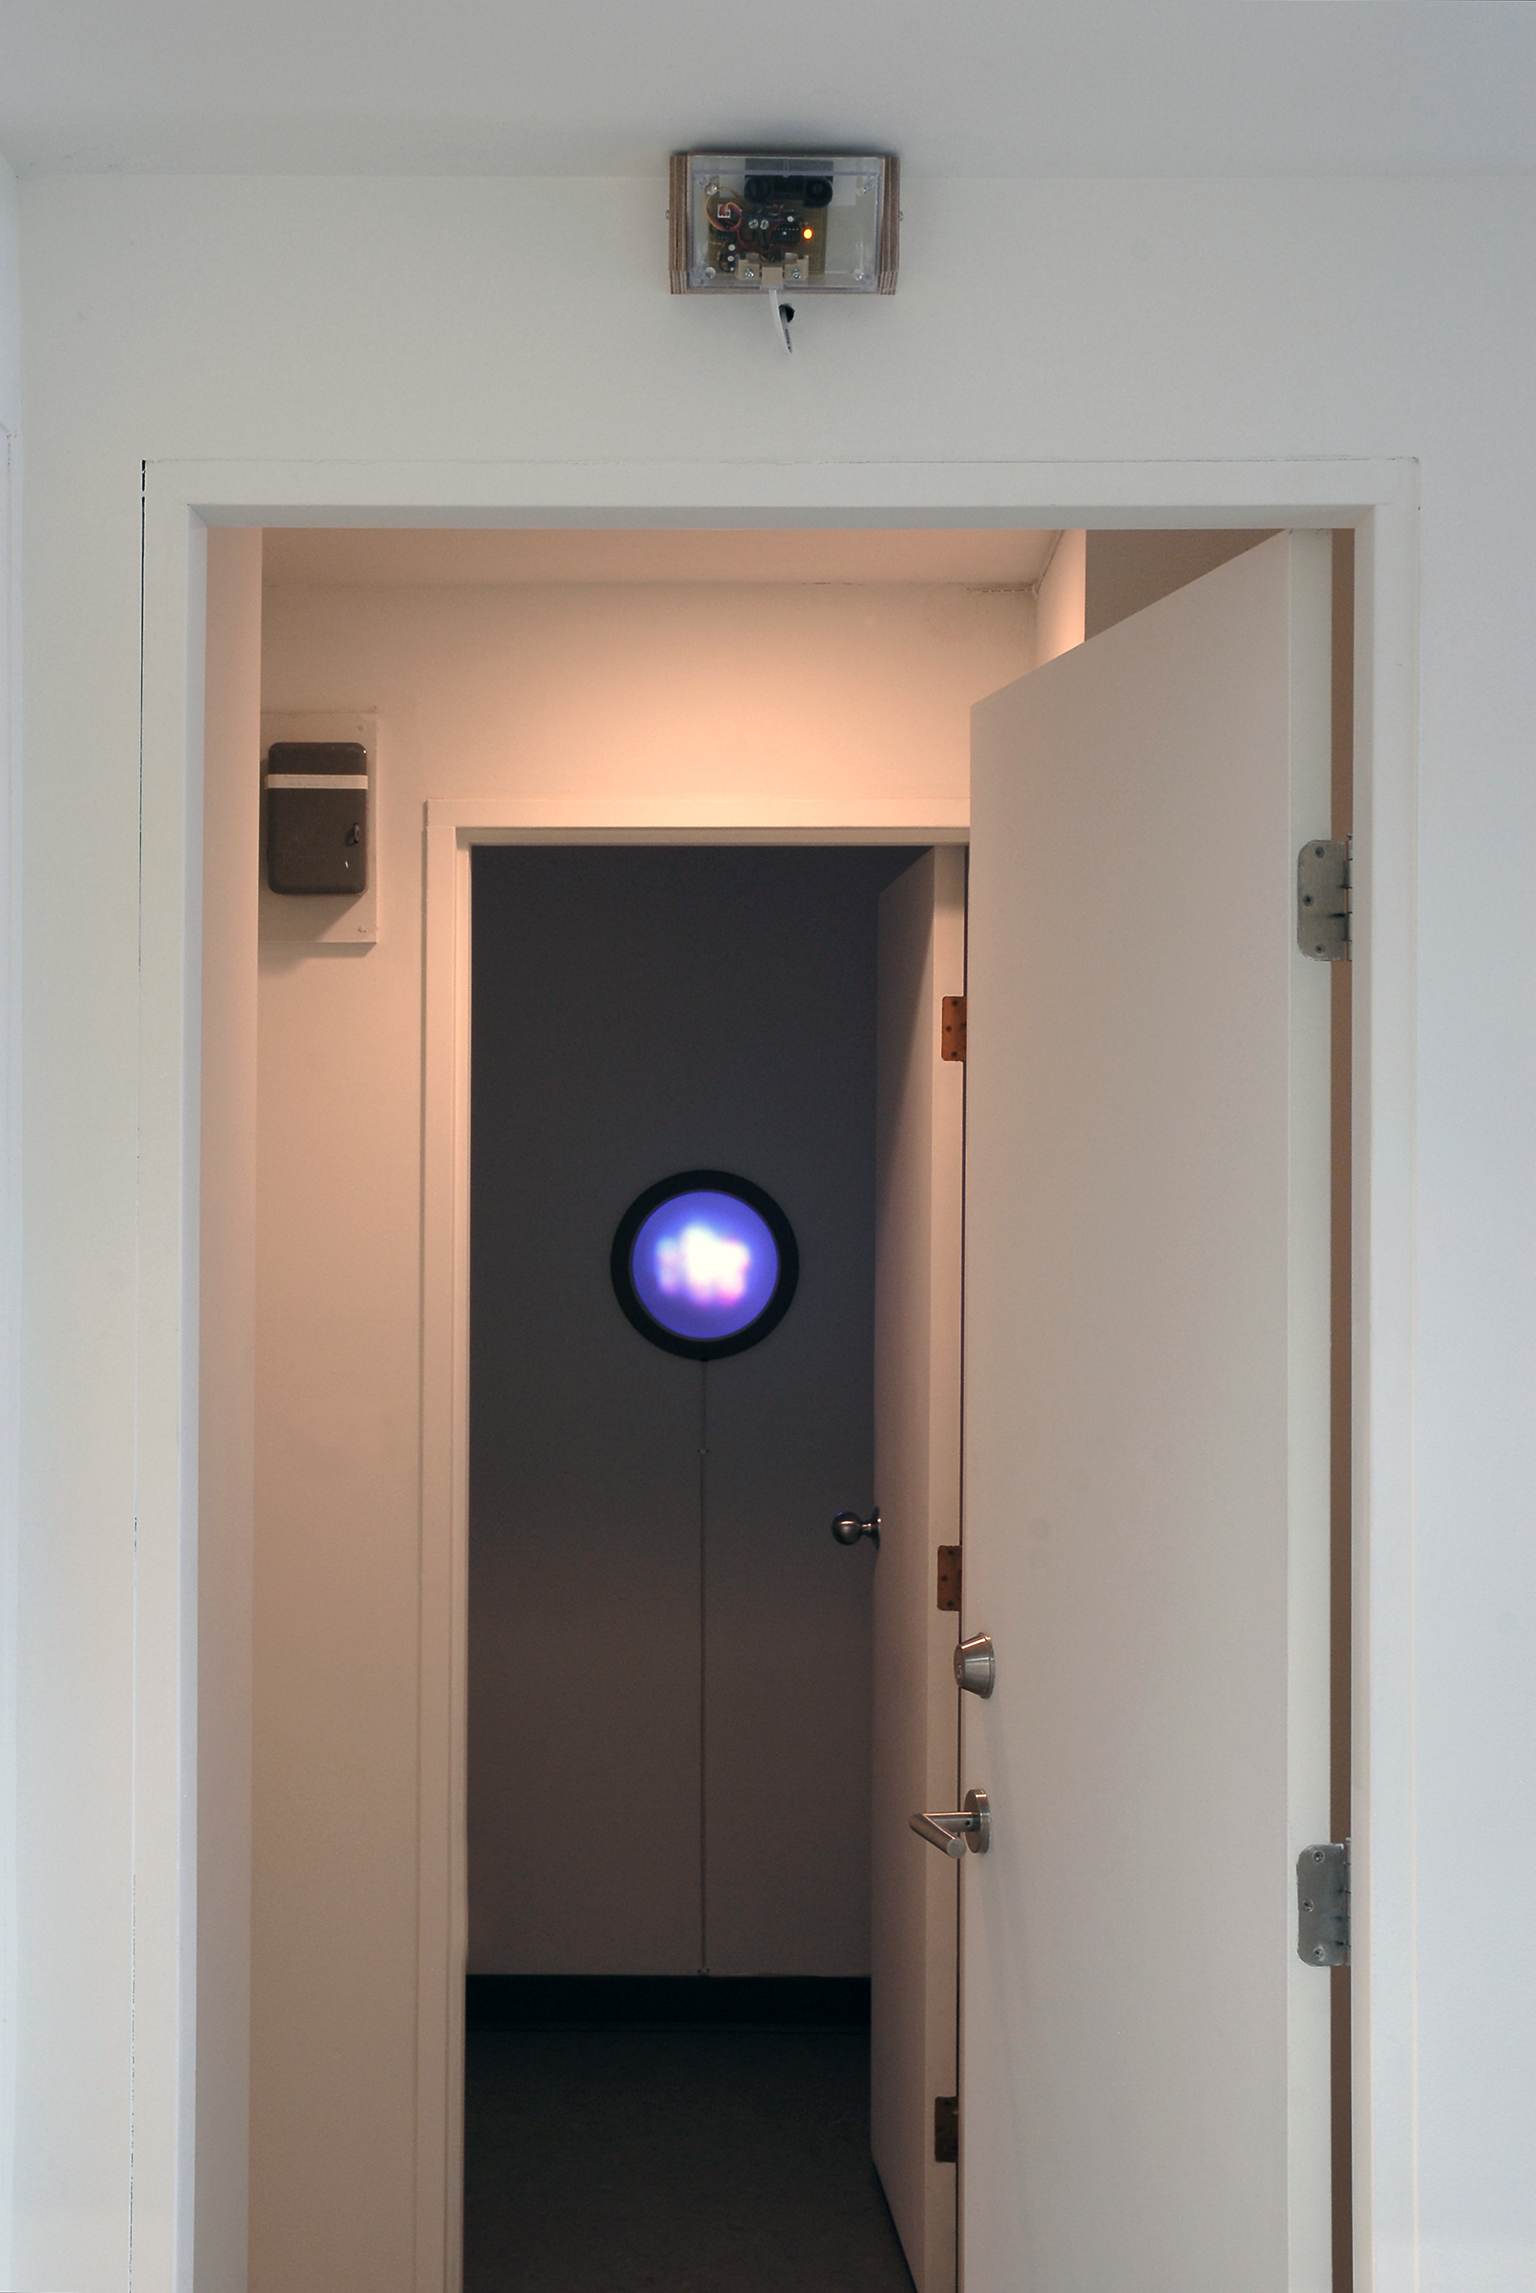 Germaine Koh, Volume (Traffic), 2008, modified household fixture with LEDs responding to traffic conditions, 13 × 13 × 5 in. (33 x 33 x 13 cm) by